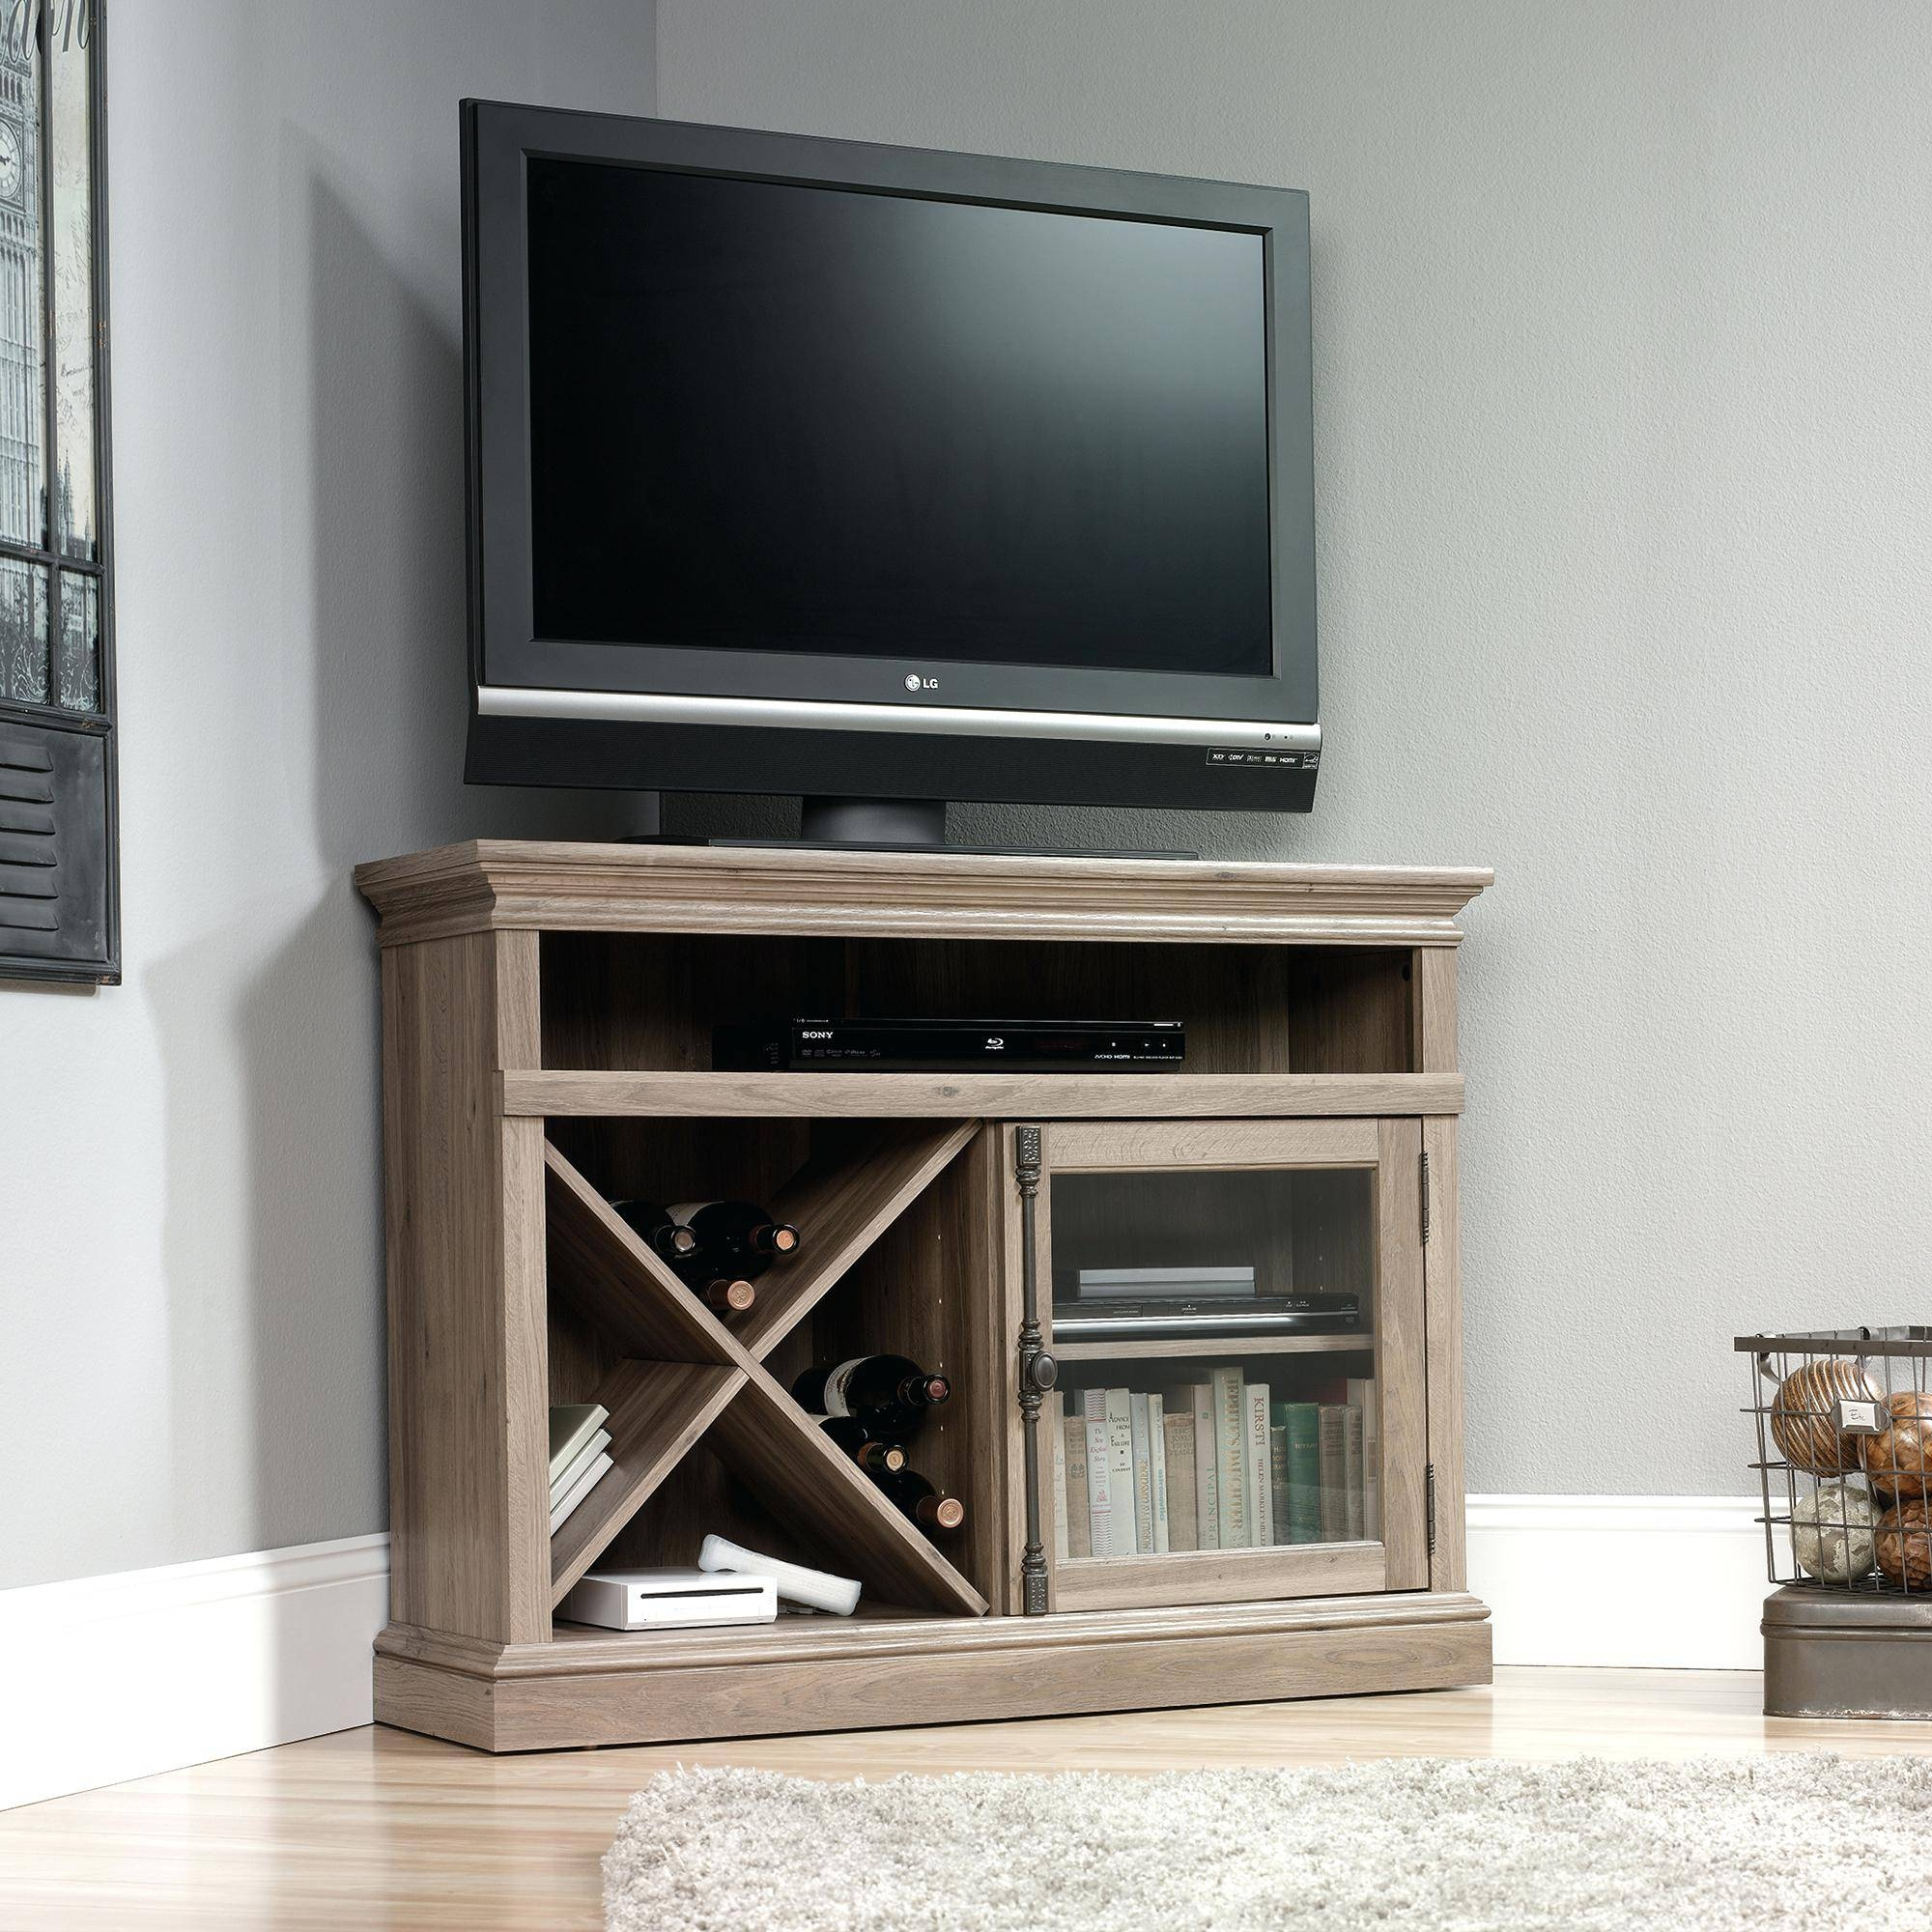 Tv Stand : Modern 121 Wood Corner Tv Table Stupendous Wood Corner in Contemporary Corner Tv Stands (Image 13 of 15)